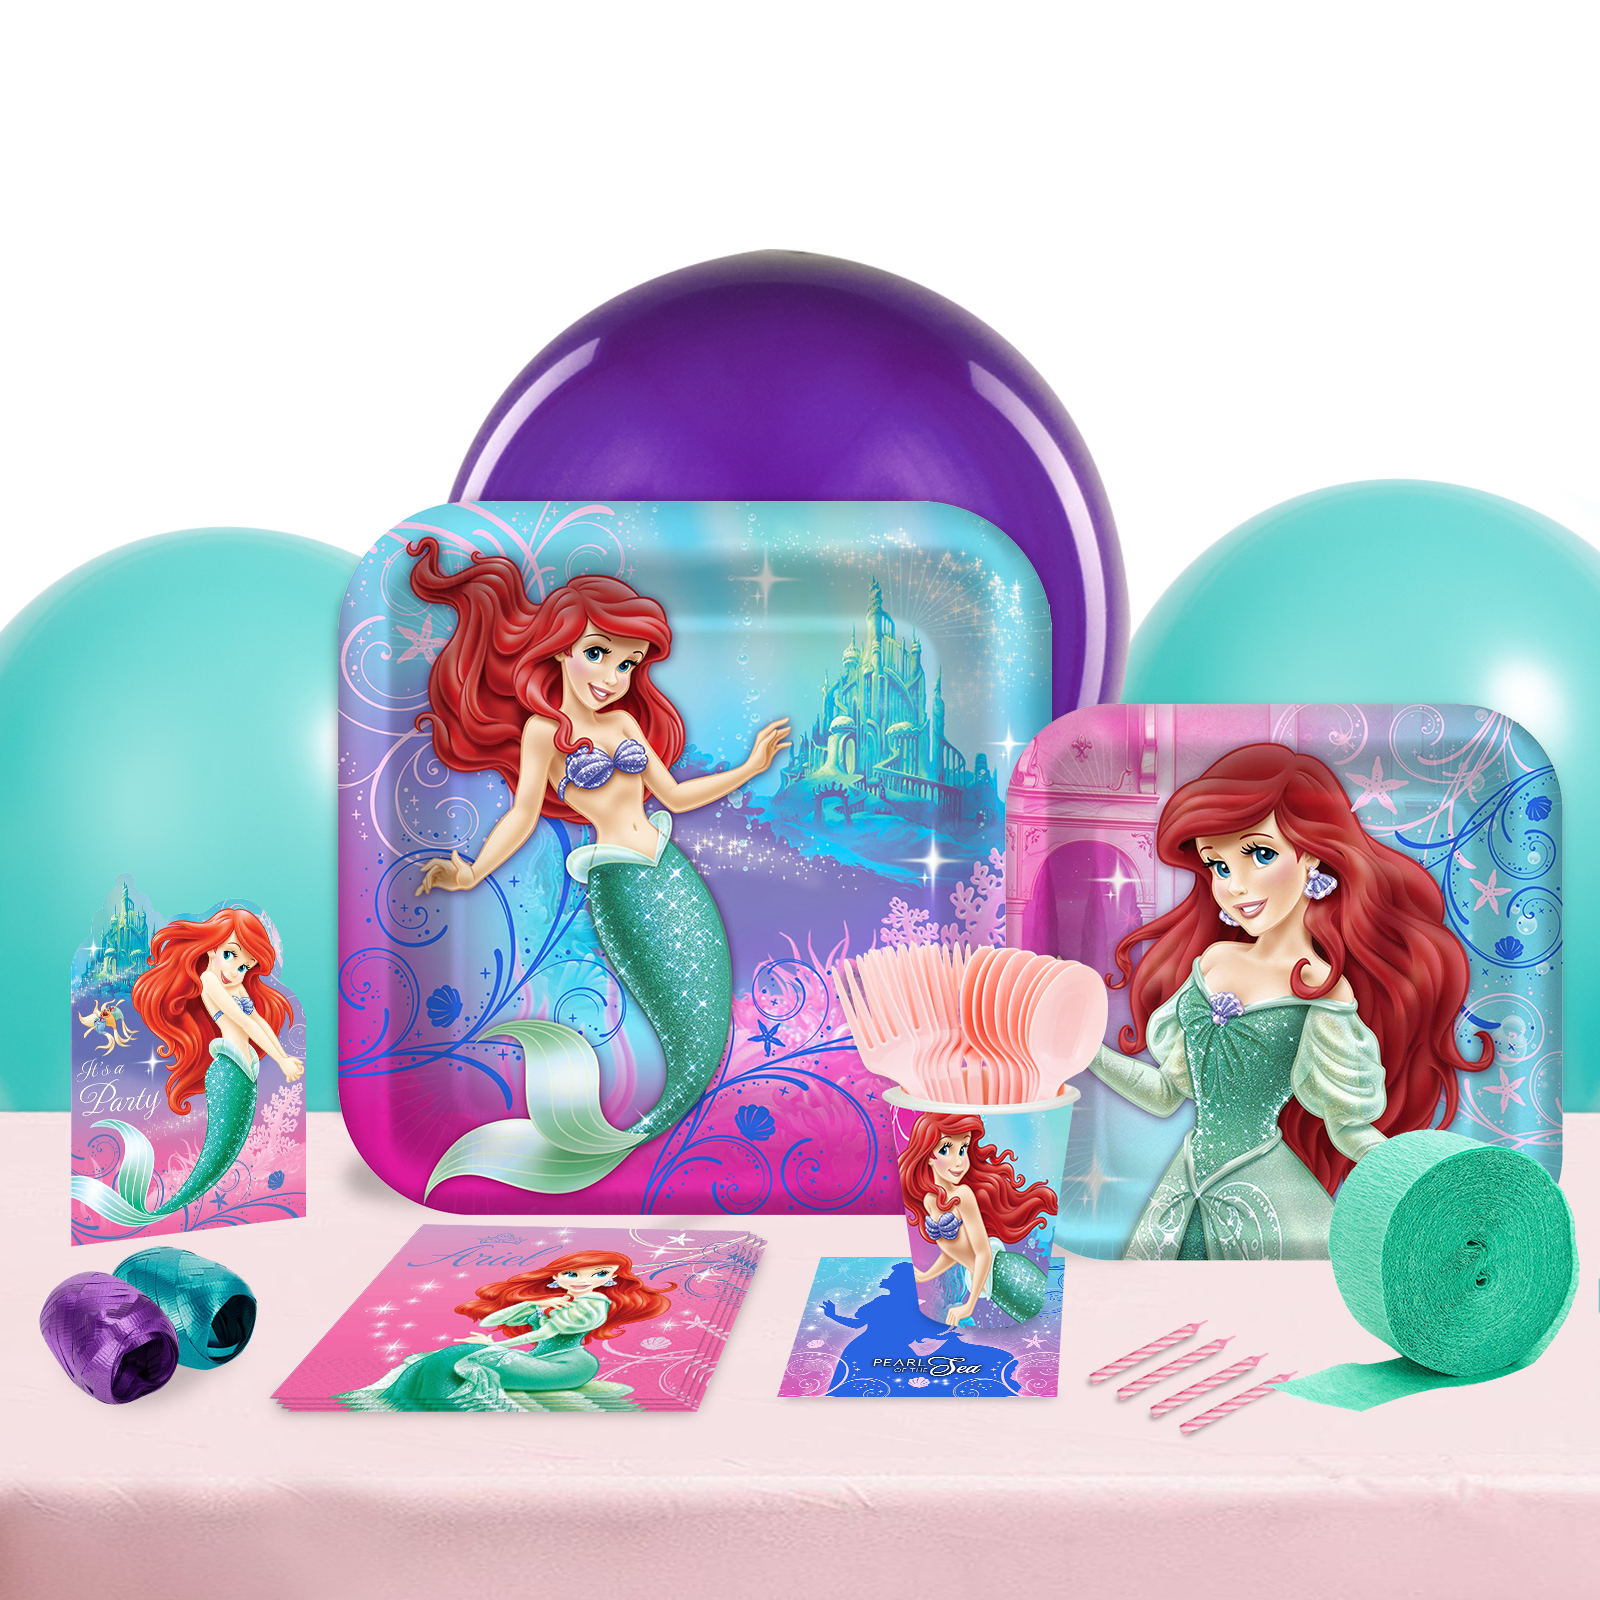 Disney The Little Mermaid Sparkle Party in a Box For 8-Basic